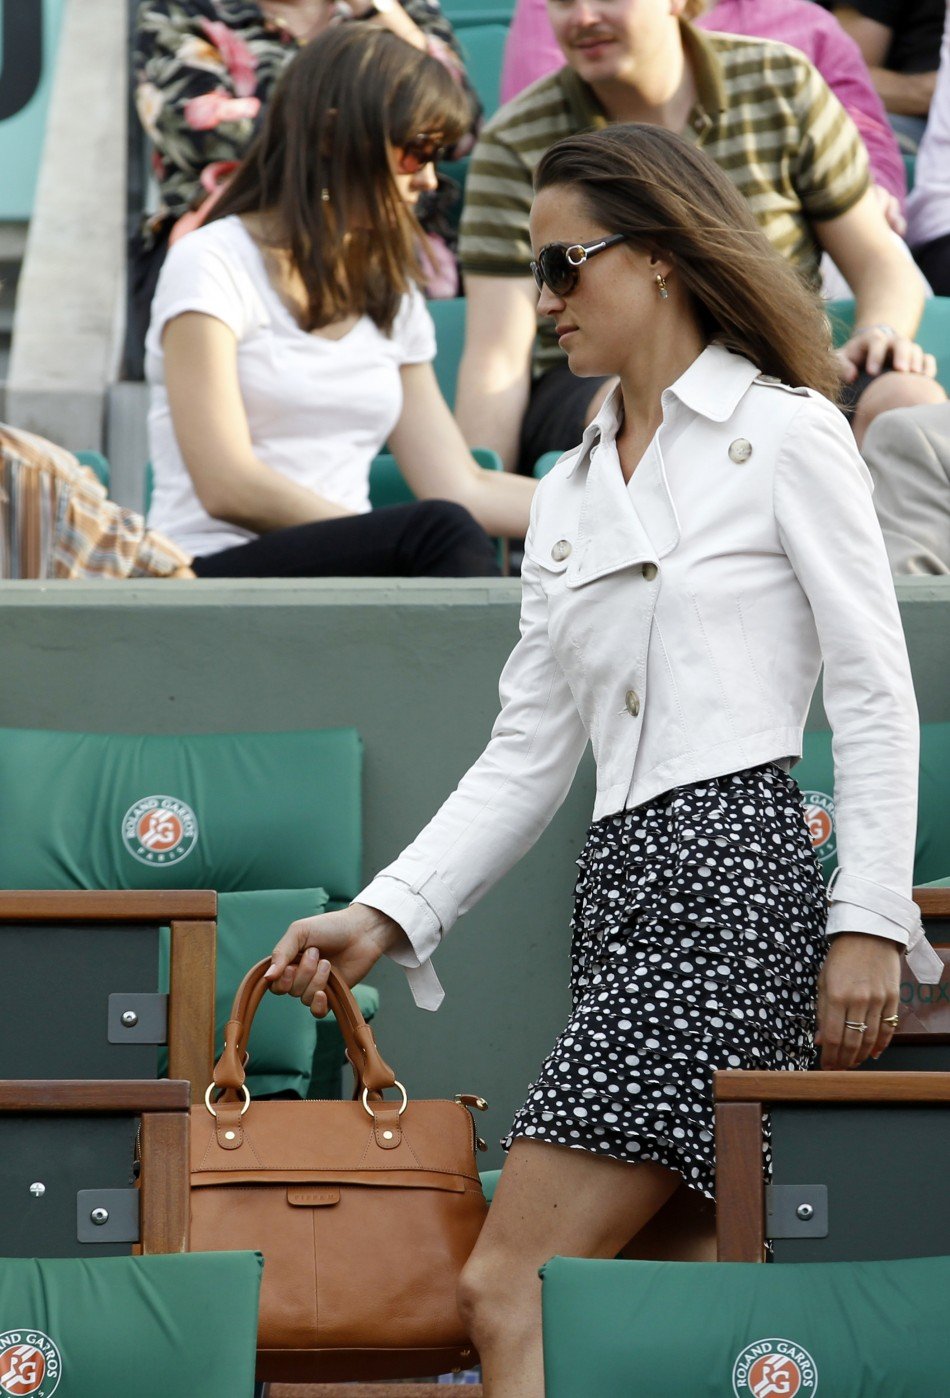 Pippa Middleton, sister of Catherine, Britain039s Duchess of Cambridge, leaves the Philippe Chartrier central court during the French Open tennis tournament at the Roland Garros stadium in Paris May 30, 2011.